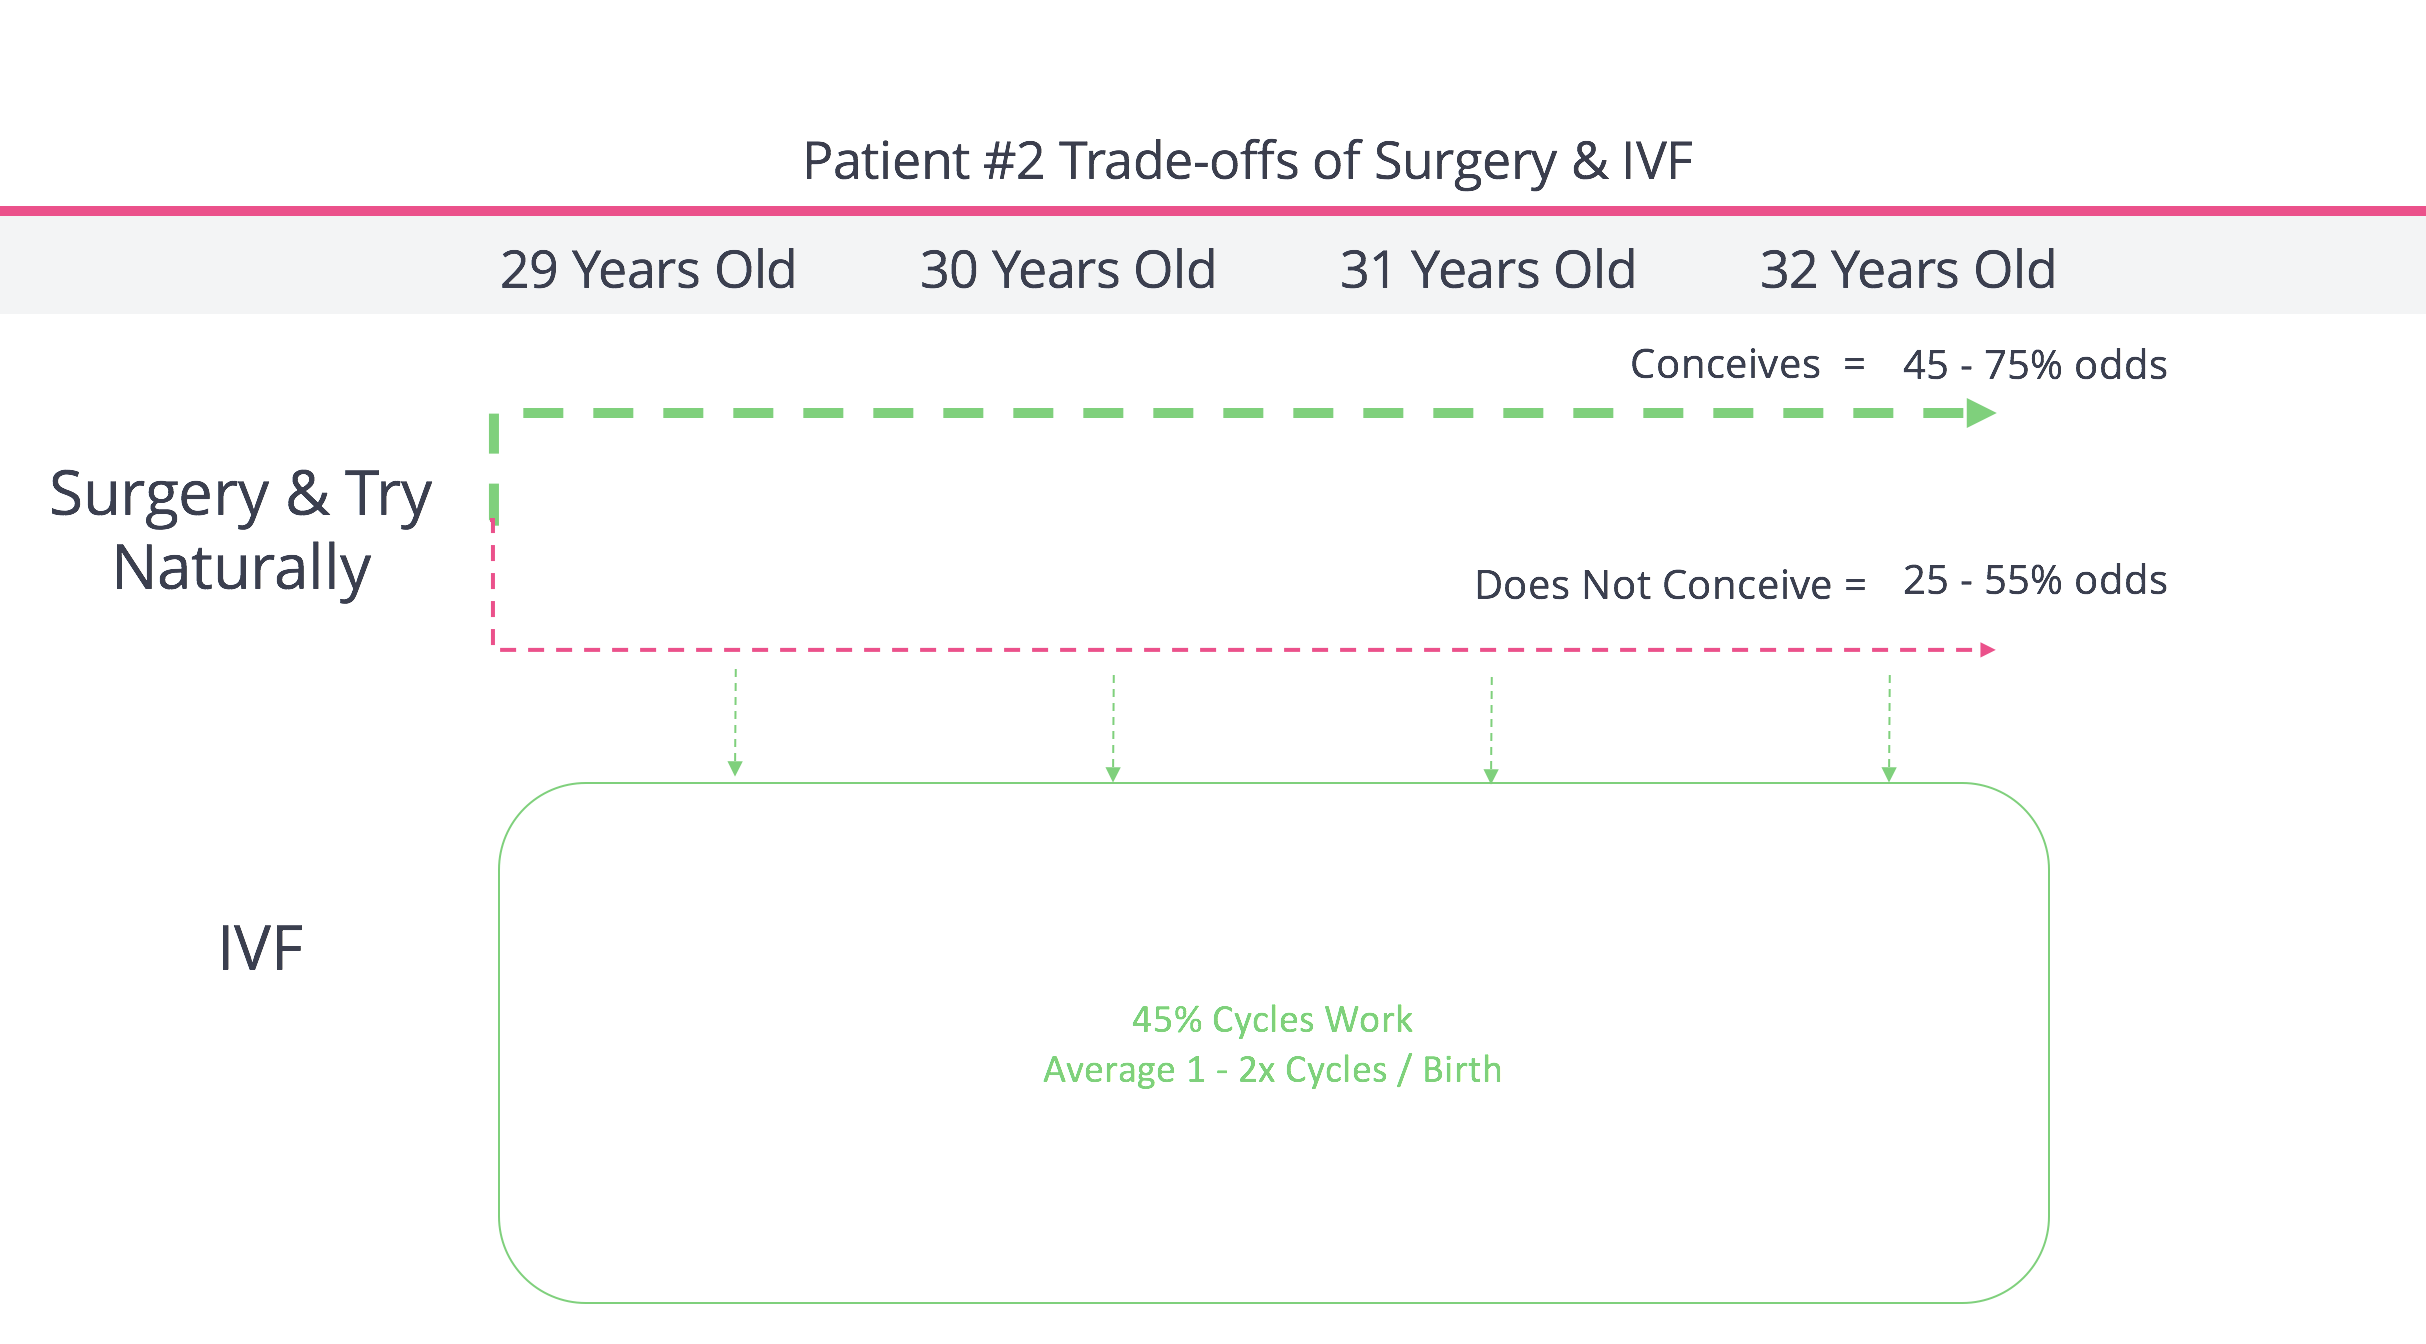 Tradeoffs of IVF vs. Endometriosis Surgery  For 29 Year Old Patient